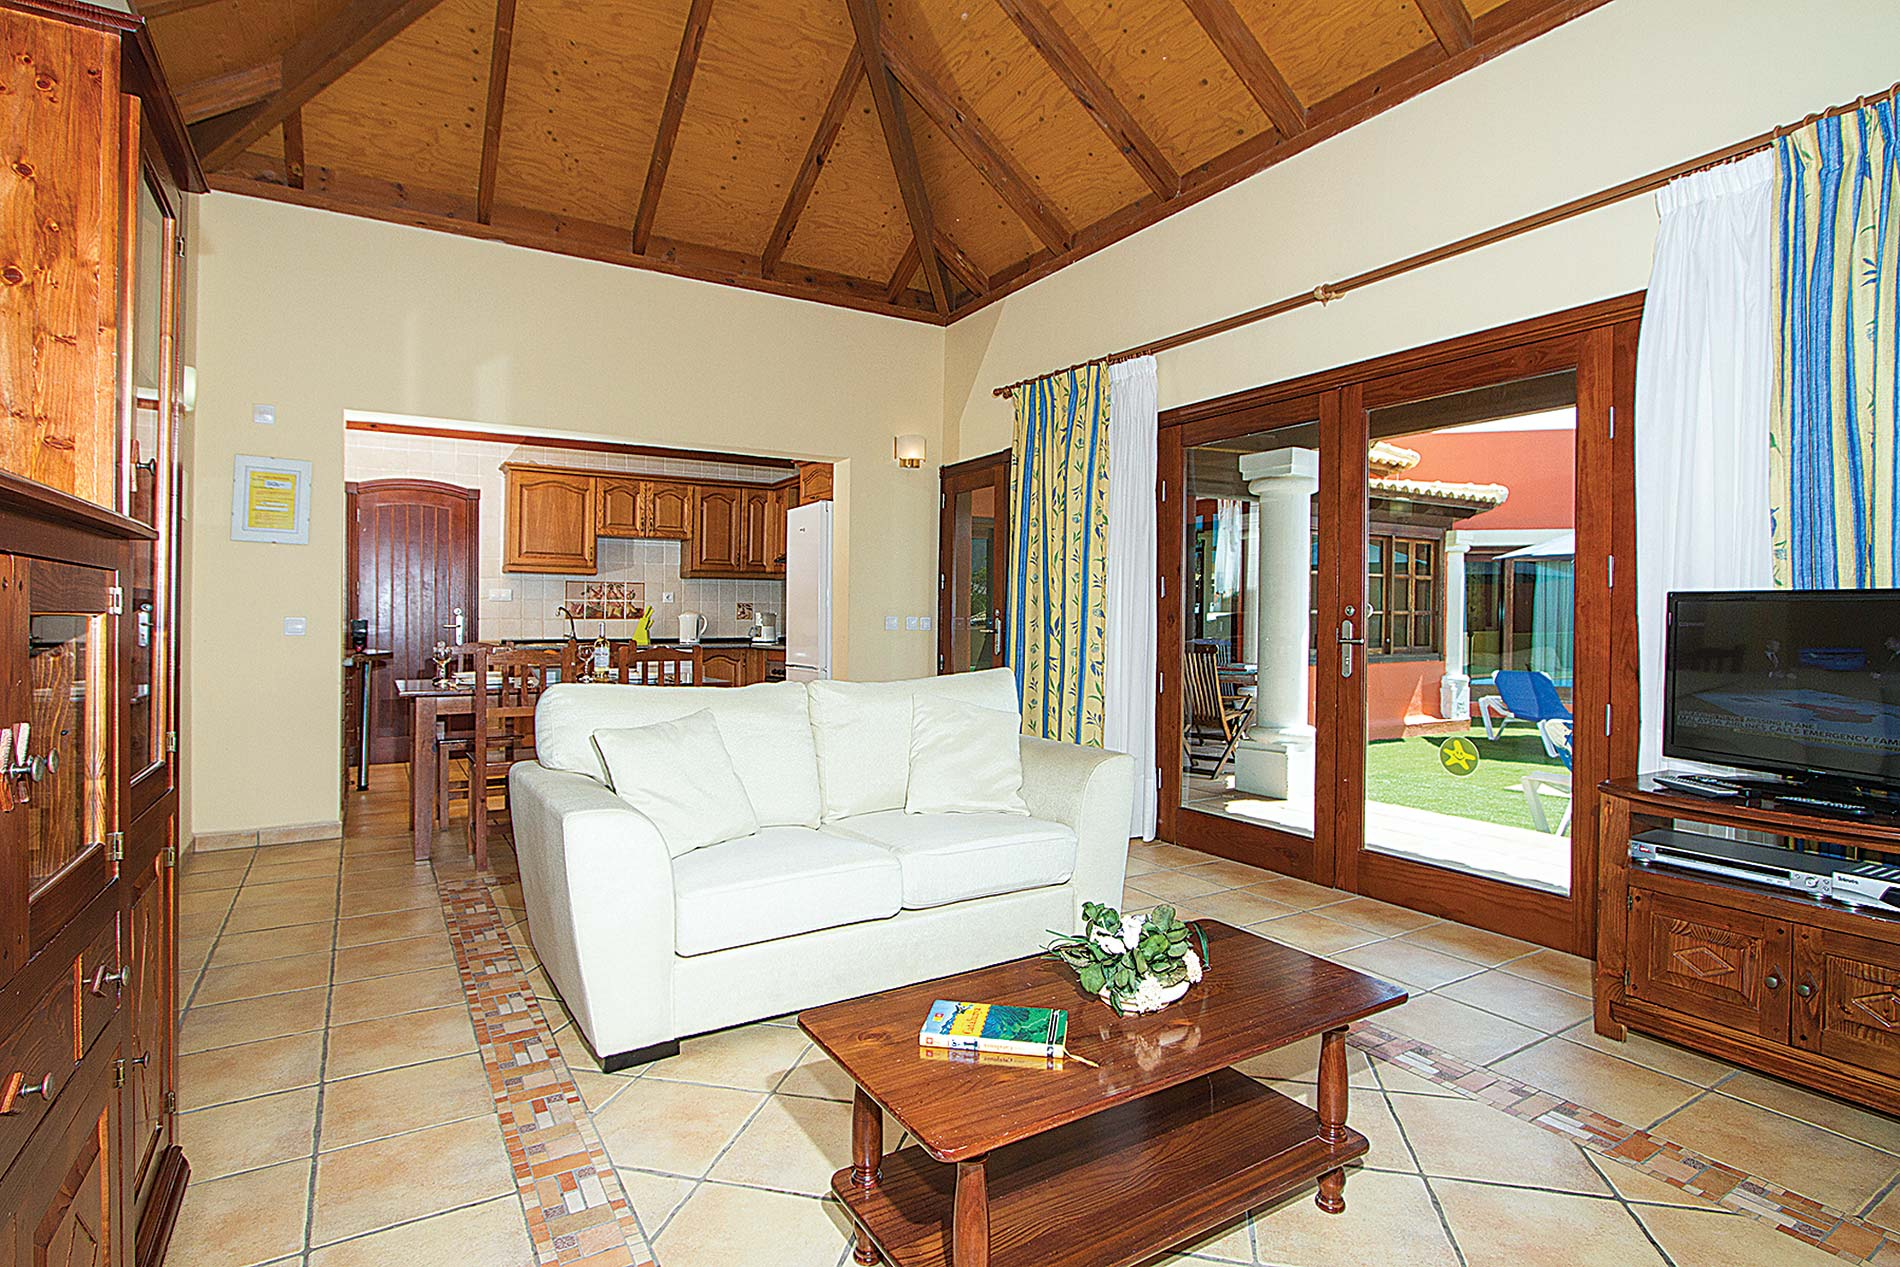 Villa Maria Mar in Corralejo - sleeps 4 people